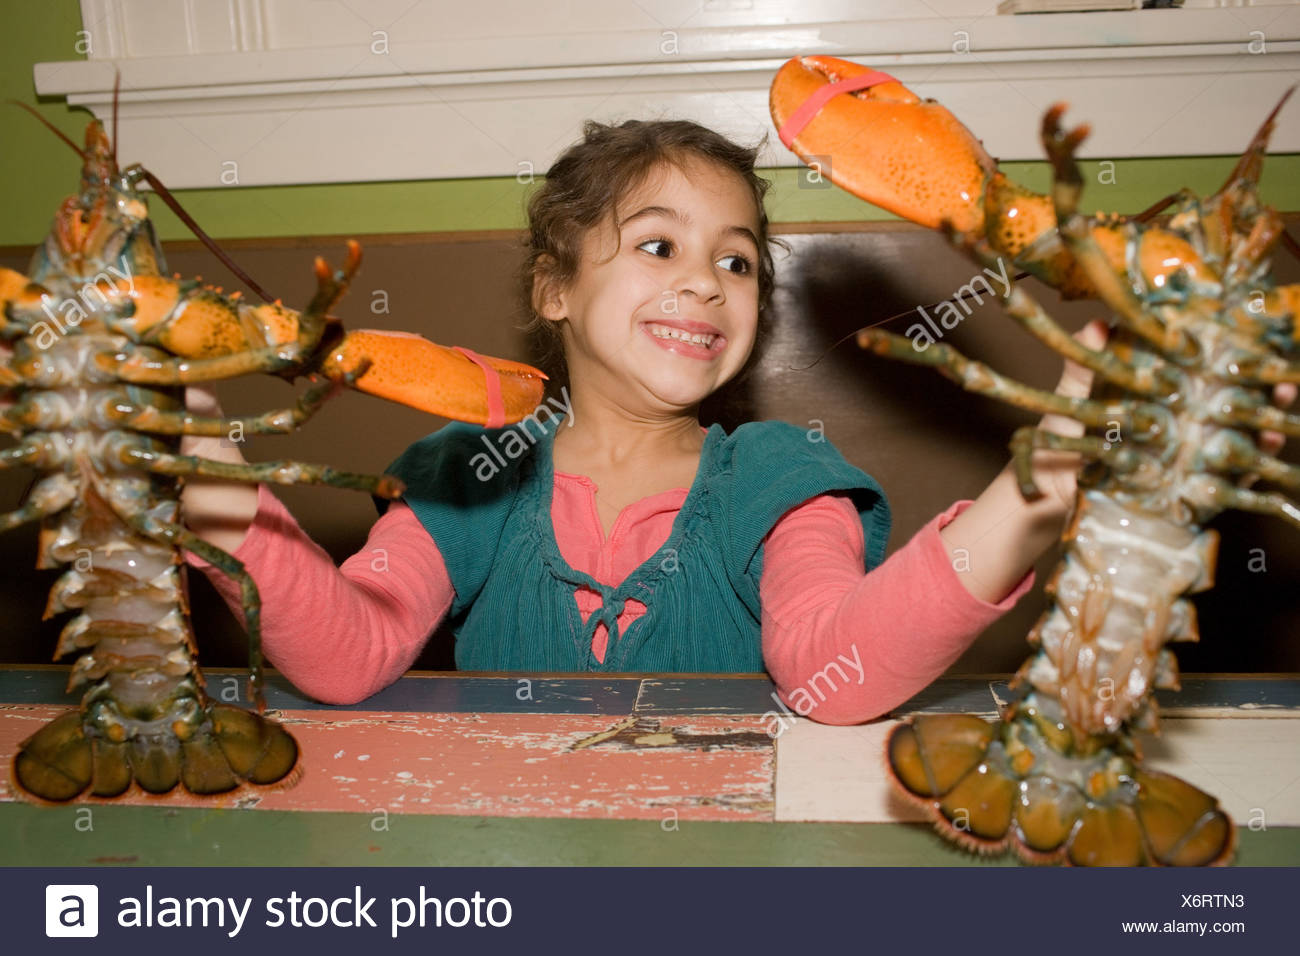 Young girl holding two live lobsters - Stock Image